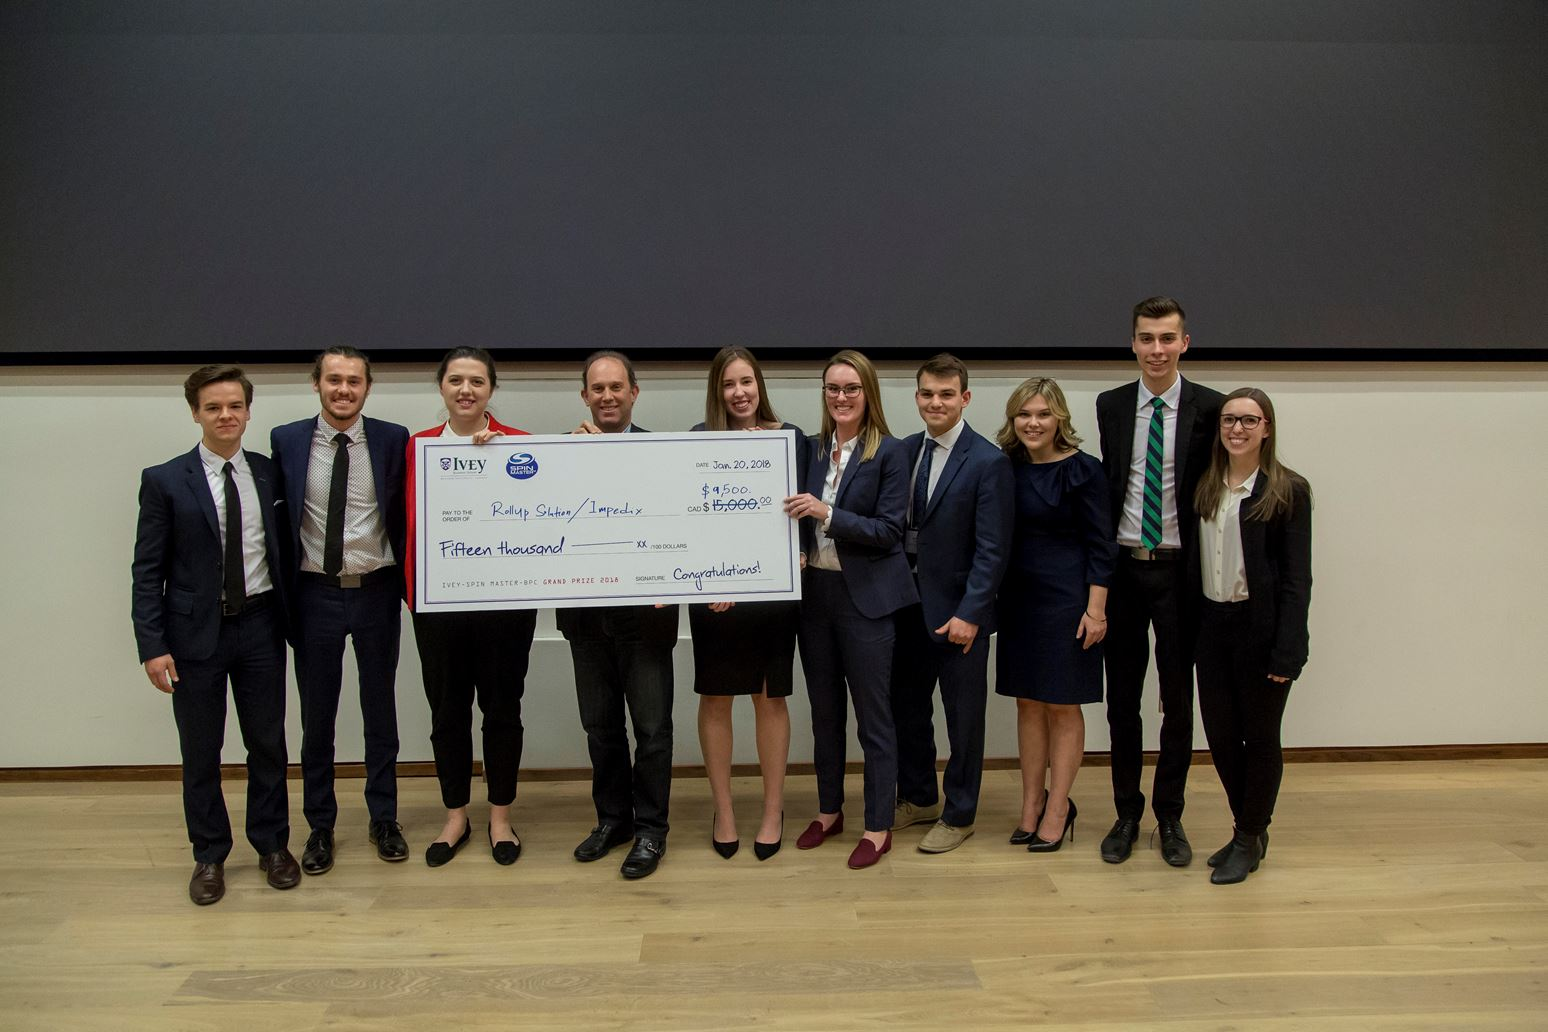 2018 Spin Master - Ivey HBA Business Plan Competition